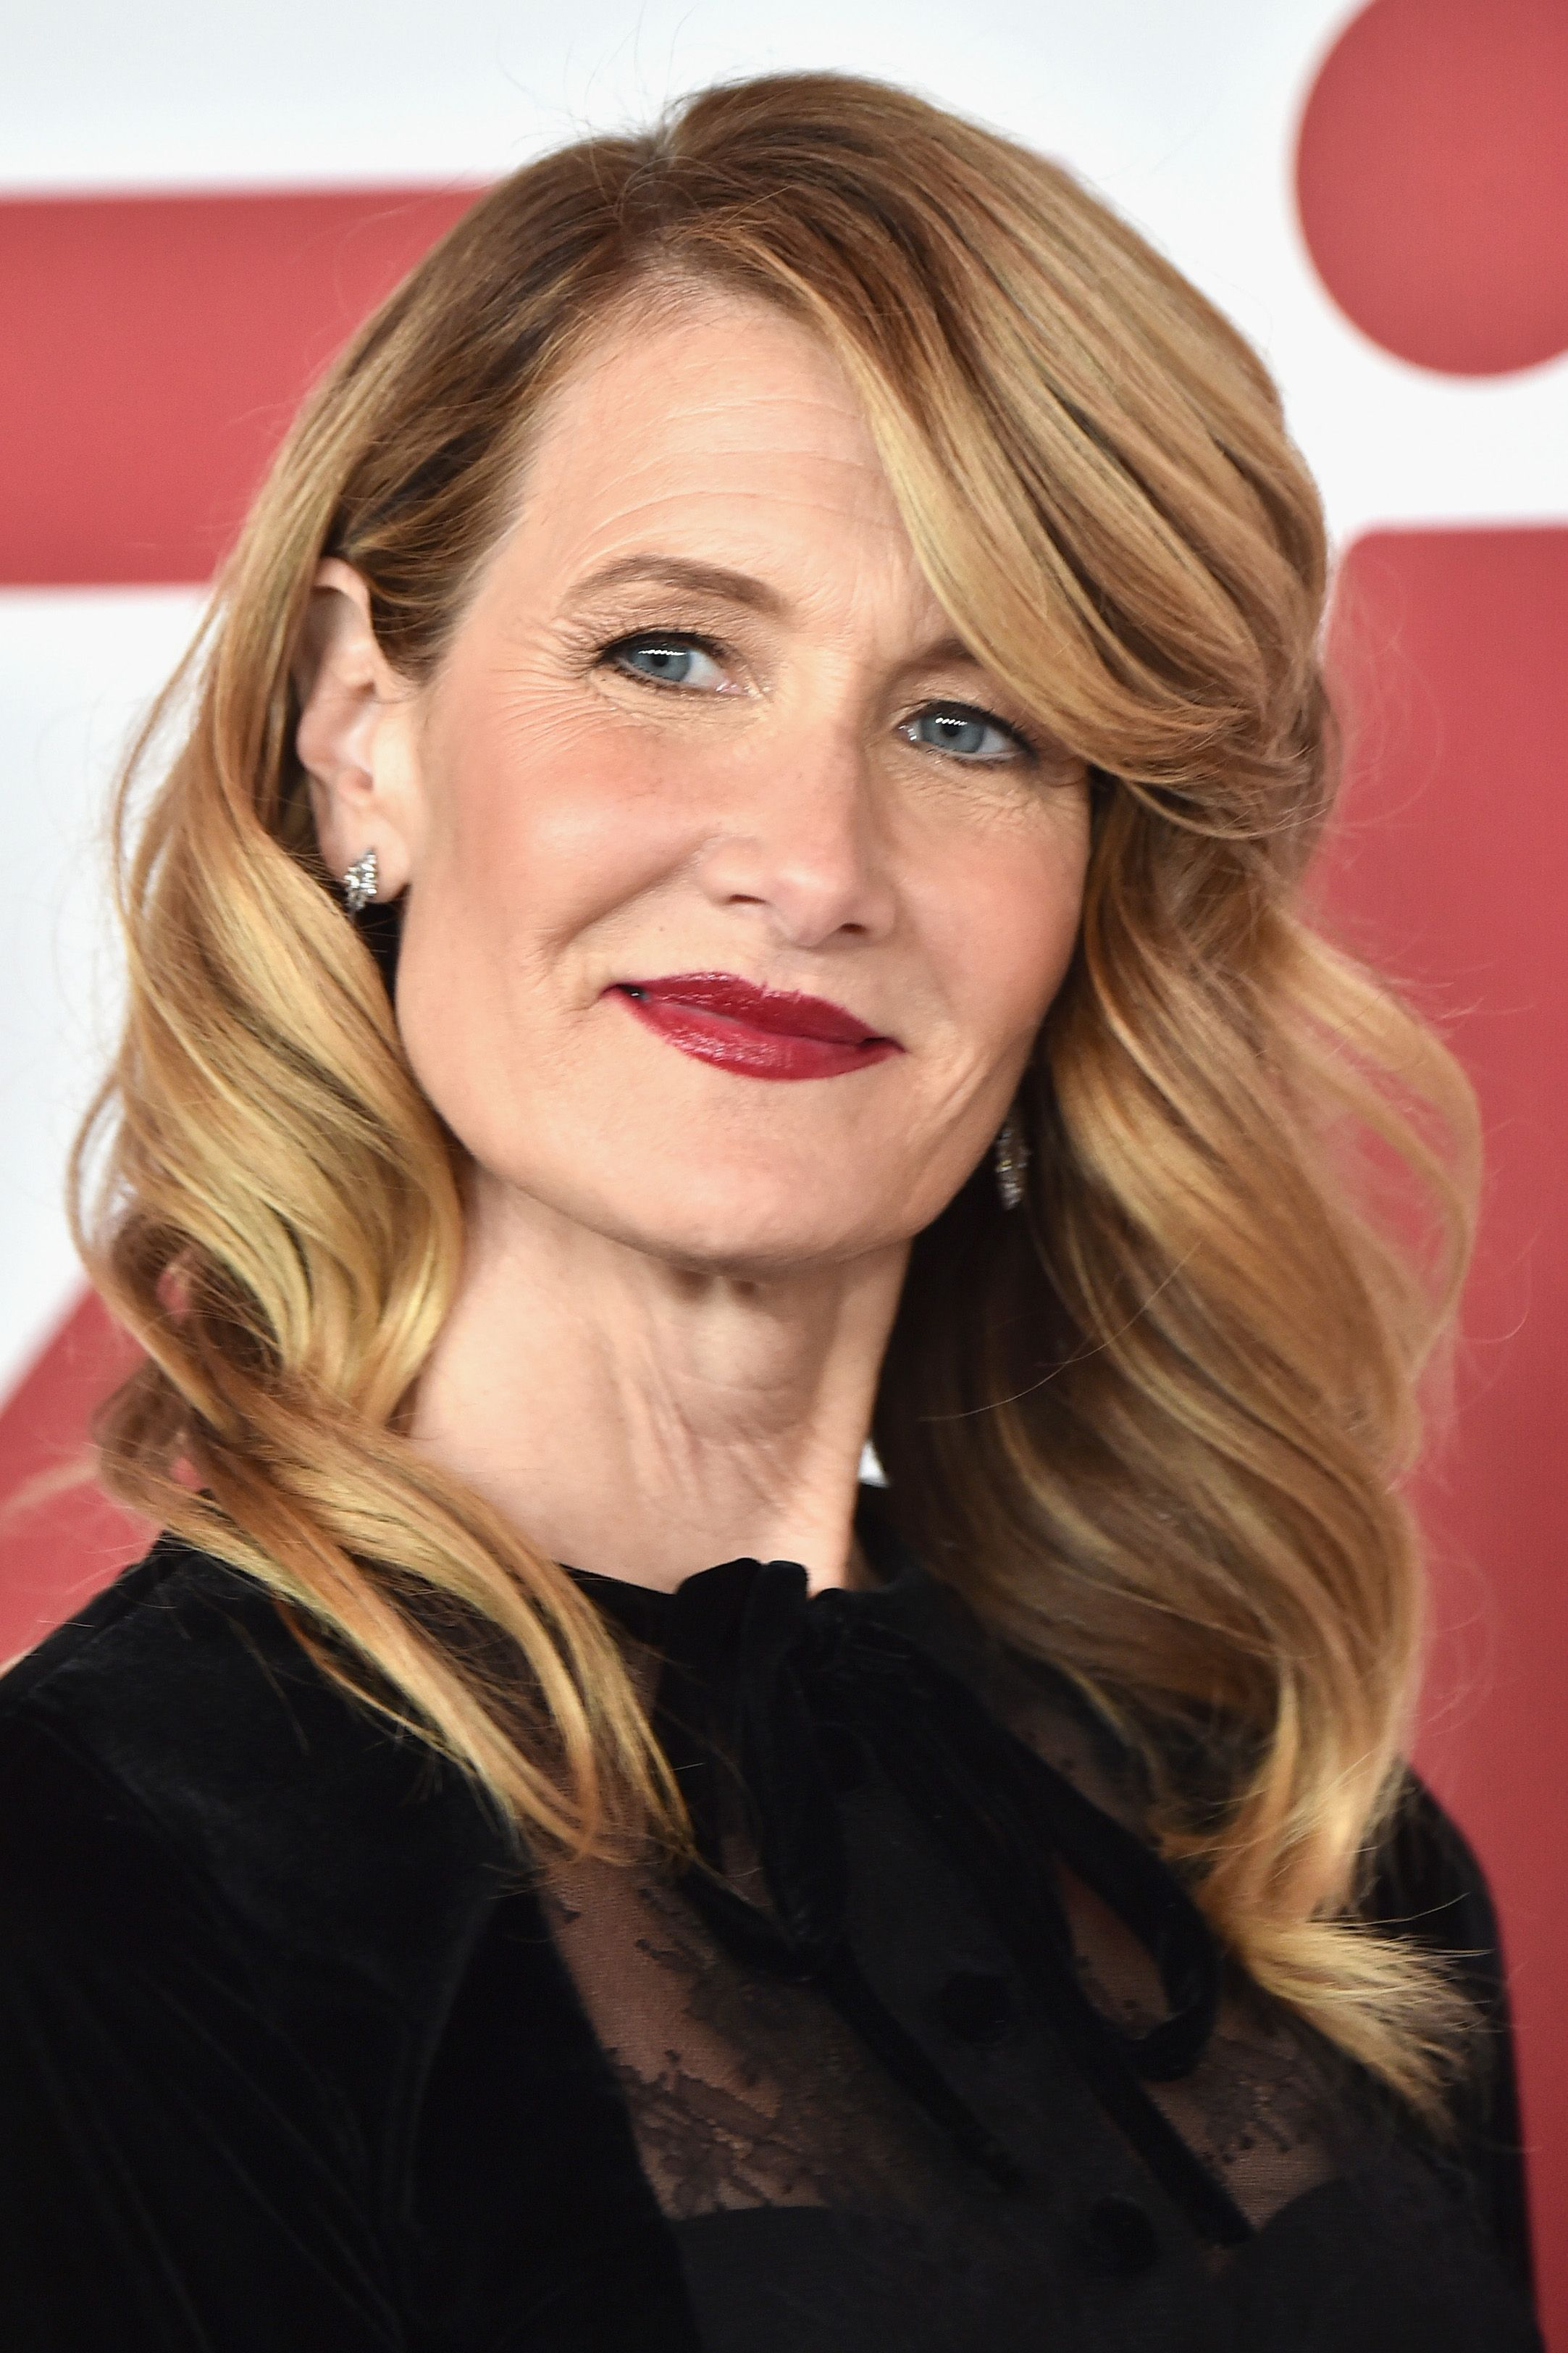 50 Best Hairstyles For Women Over 50 Celebrity Haircuts Over 50